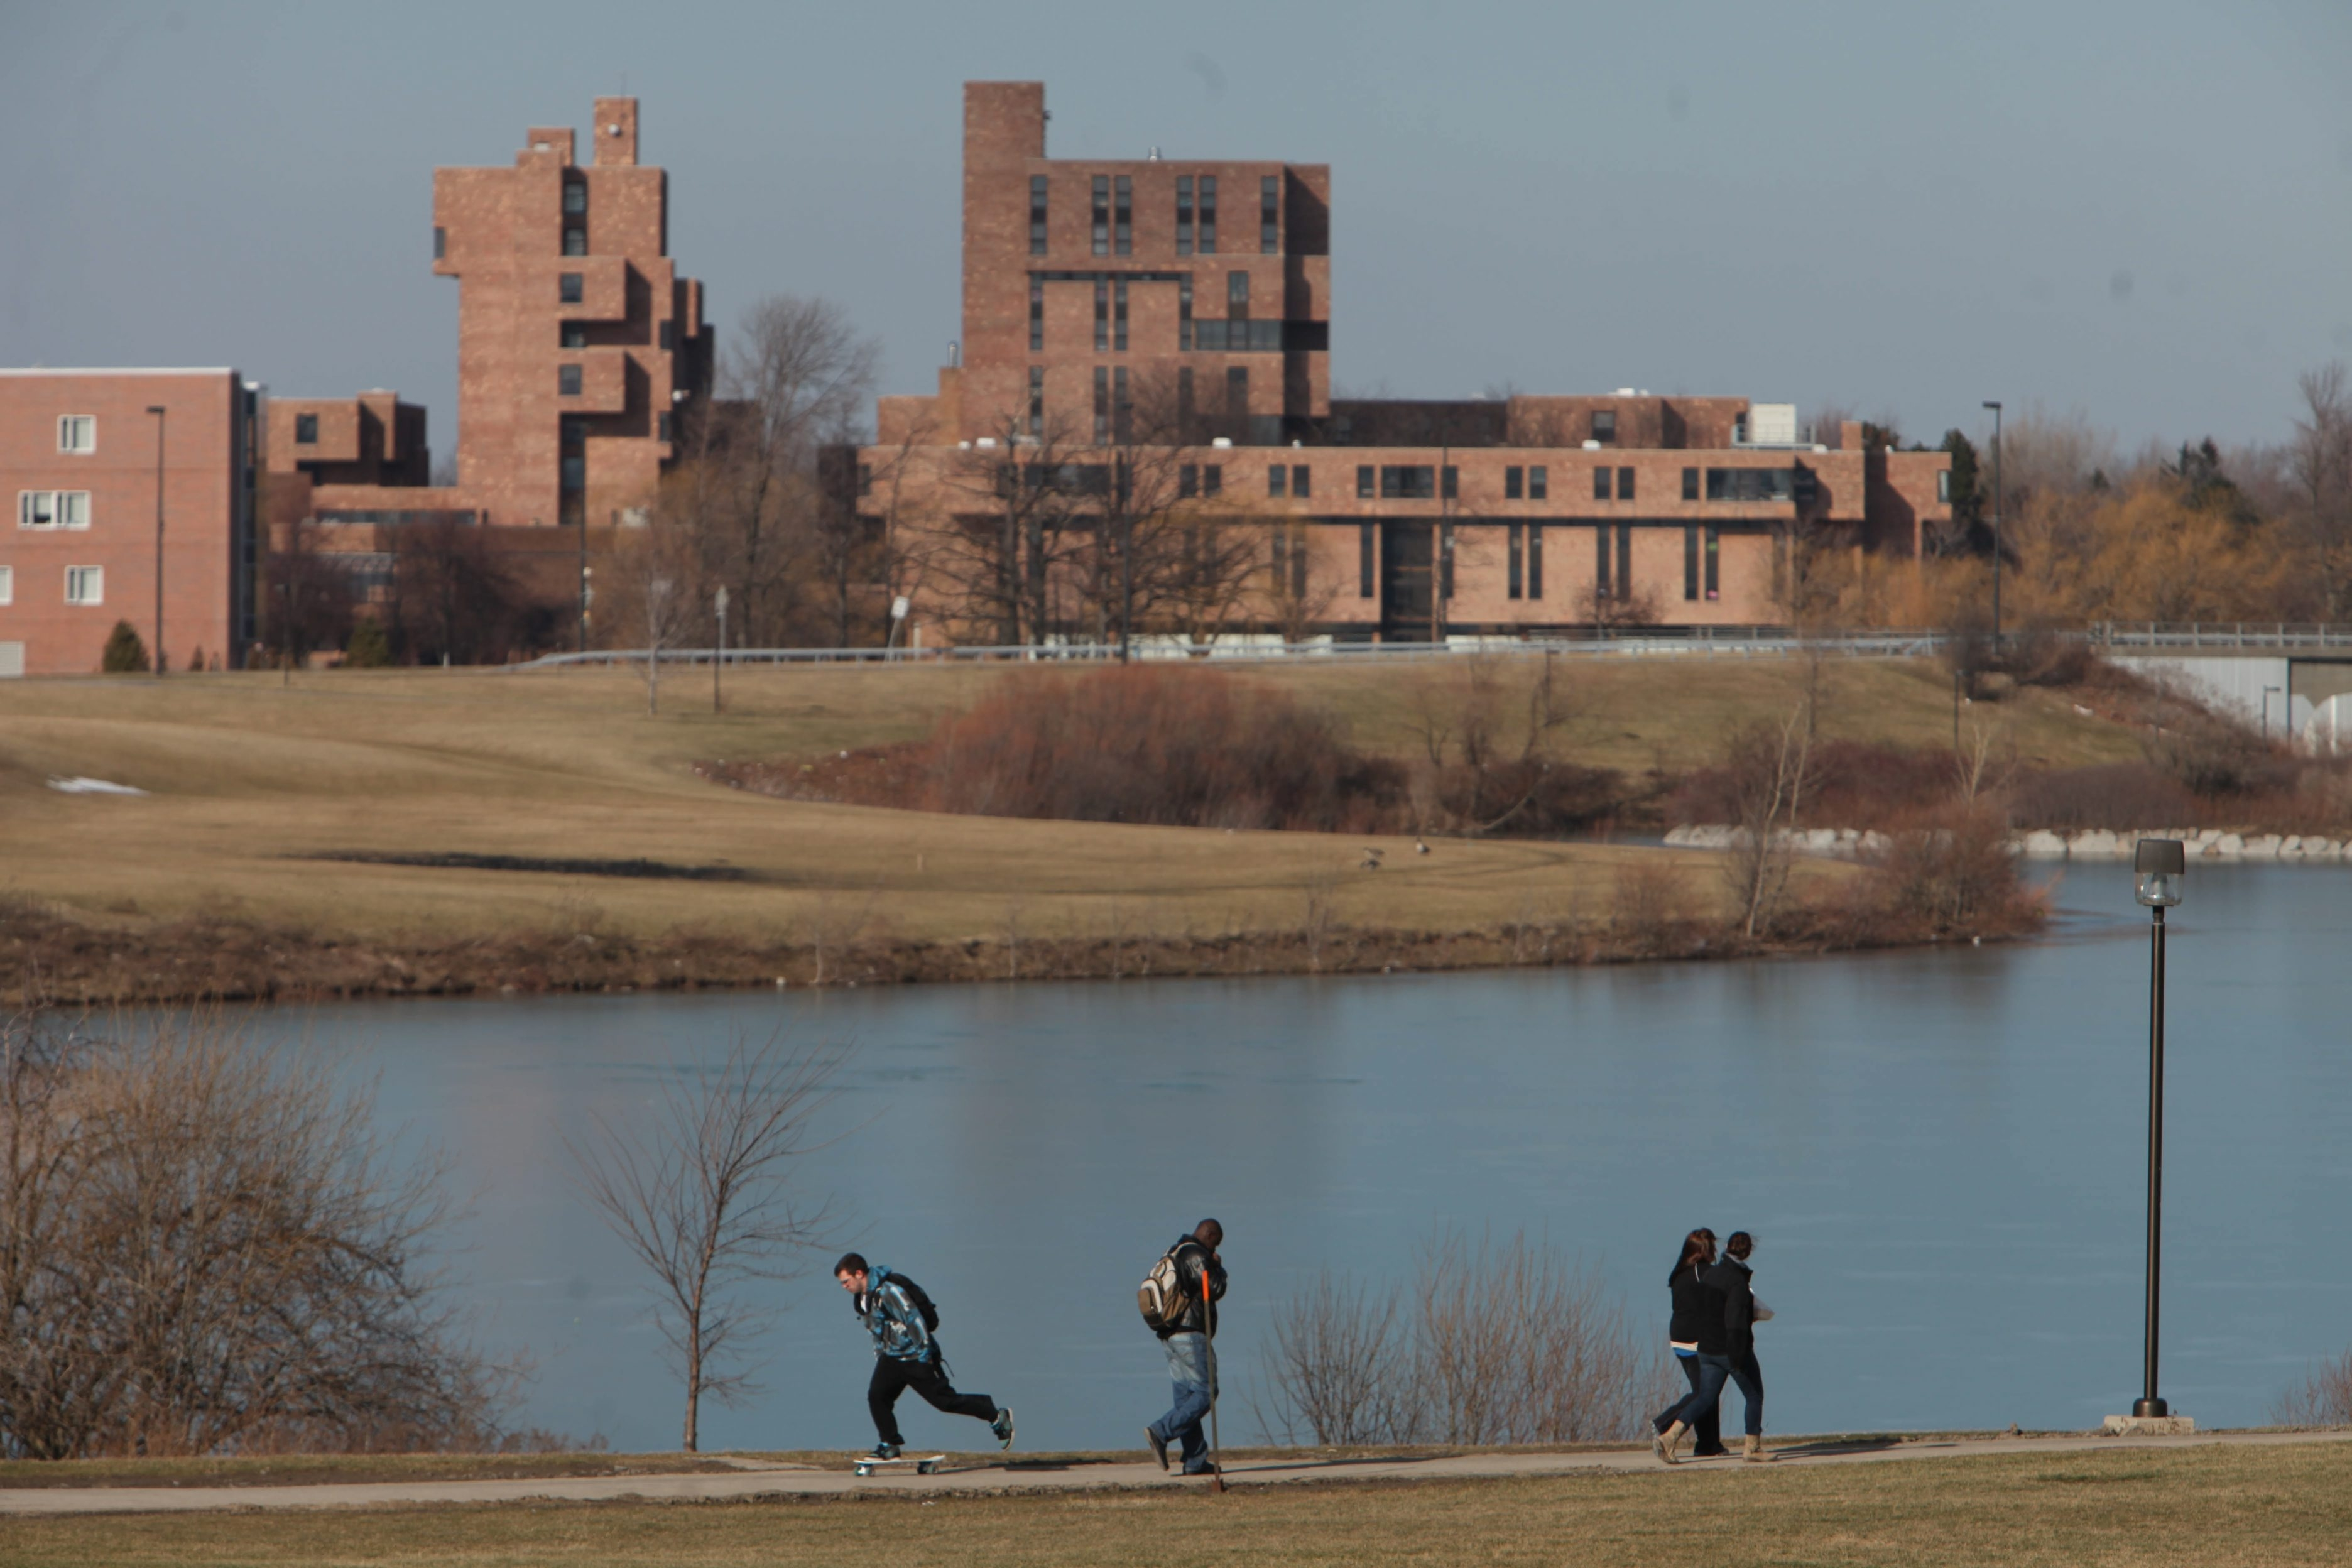 The University at Buffalo is tied for No. 109 with two other colleges in latest ranking by US News & World Report.